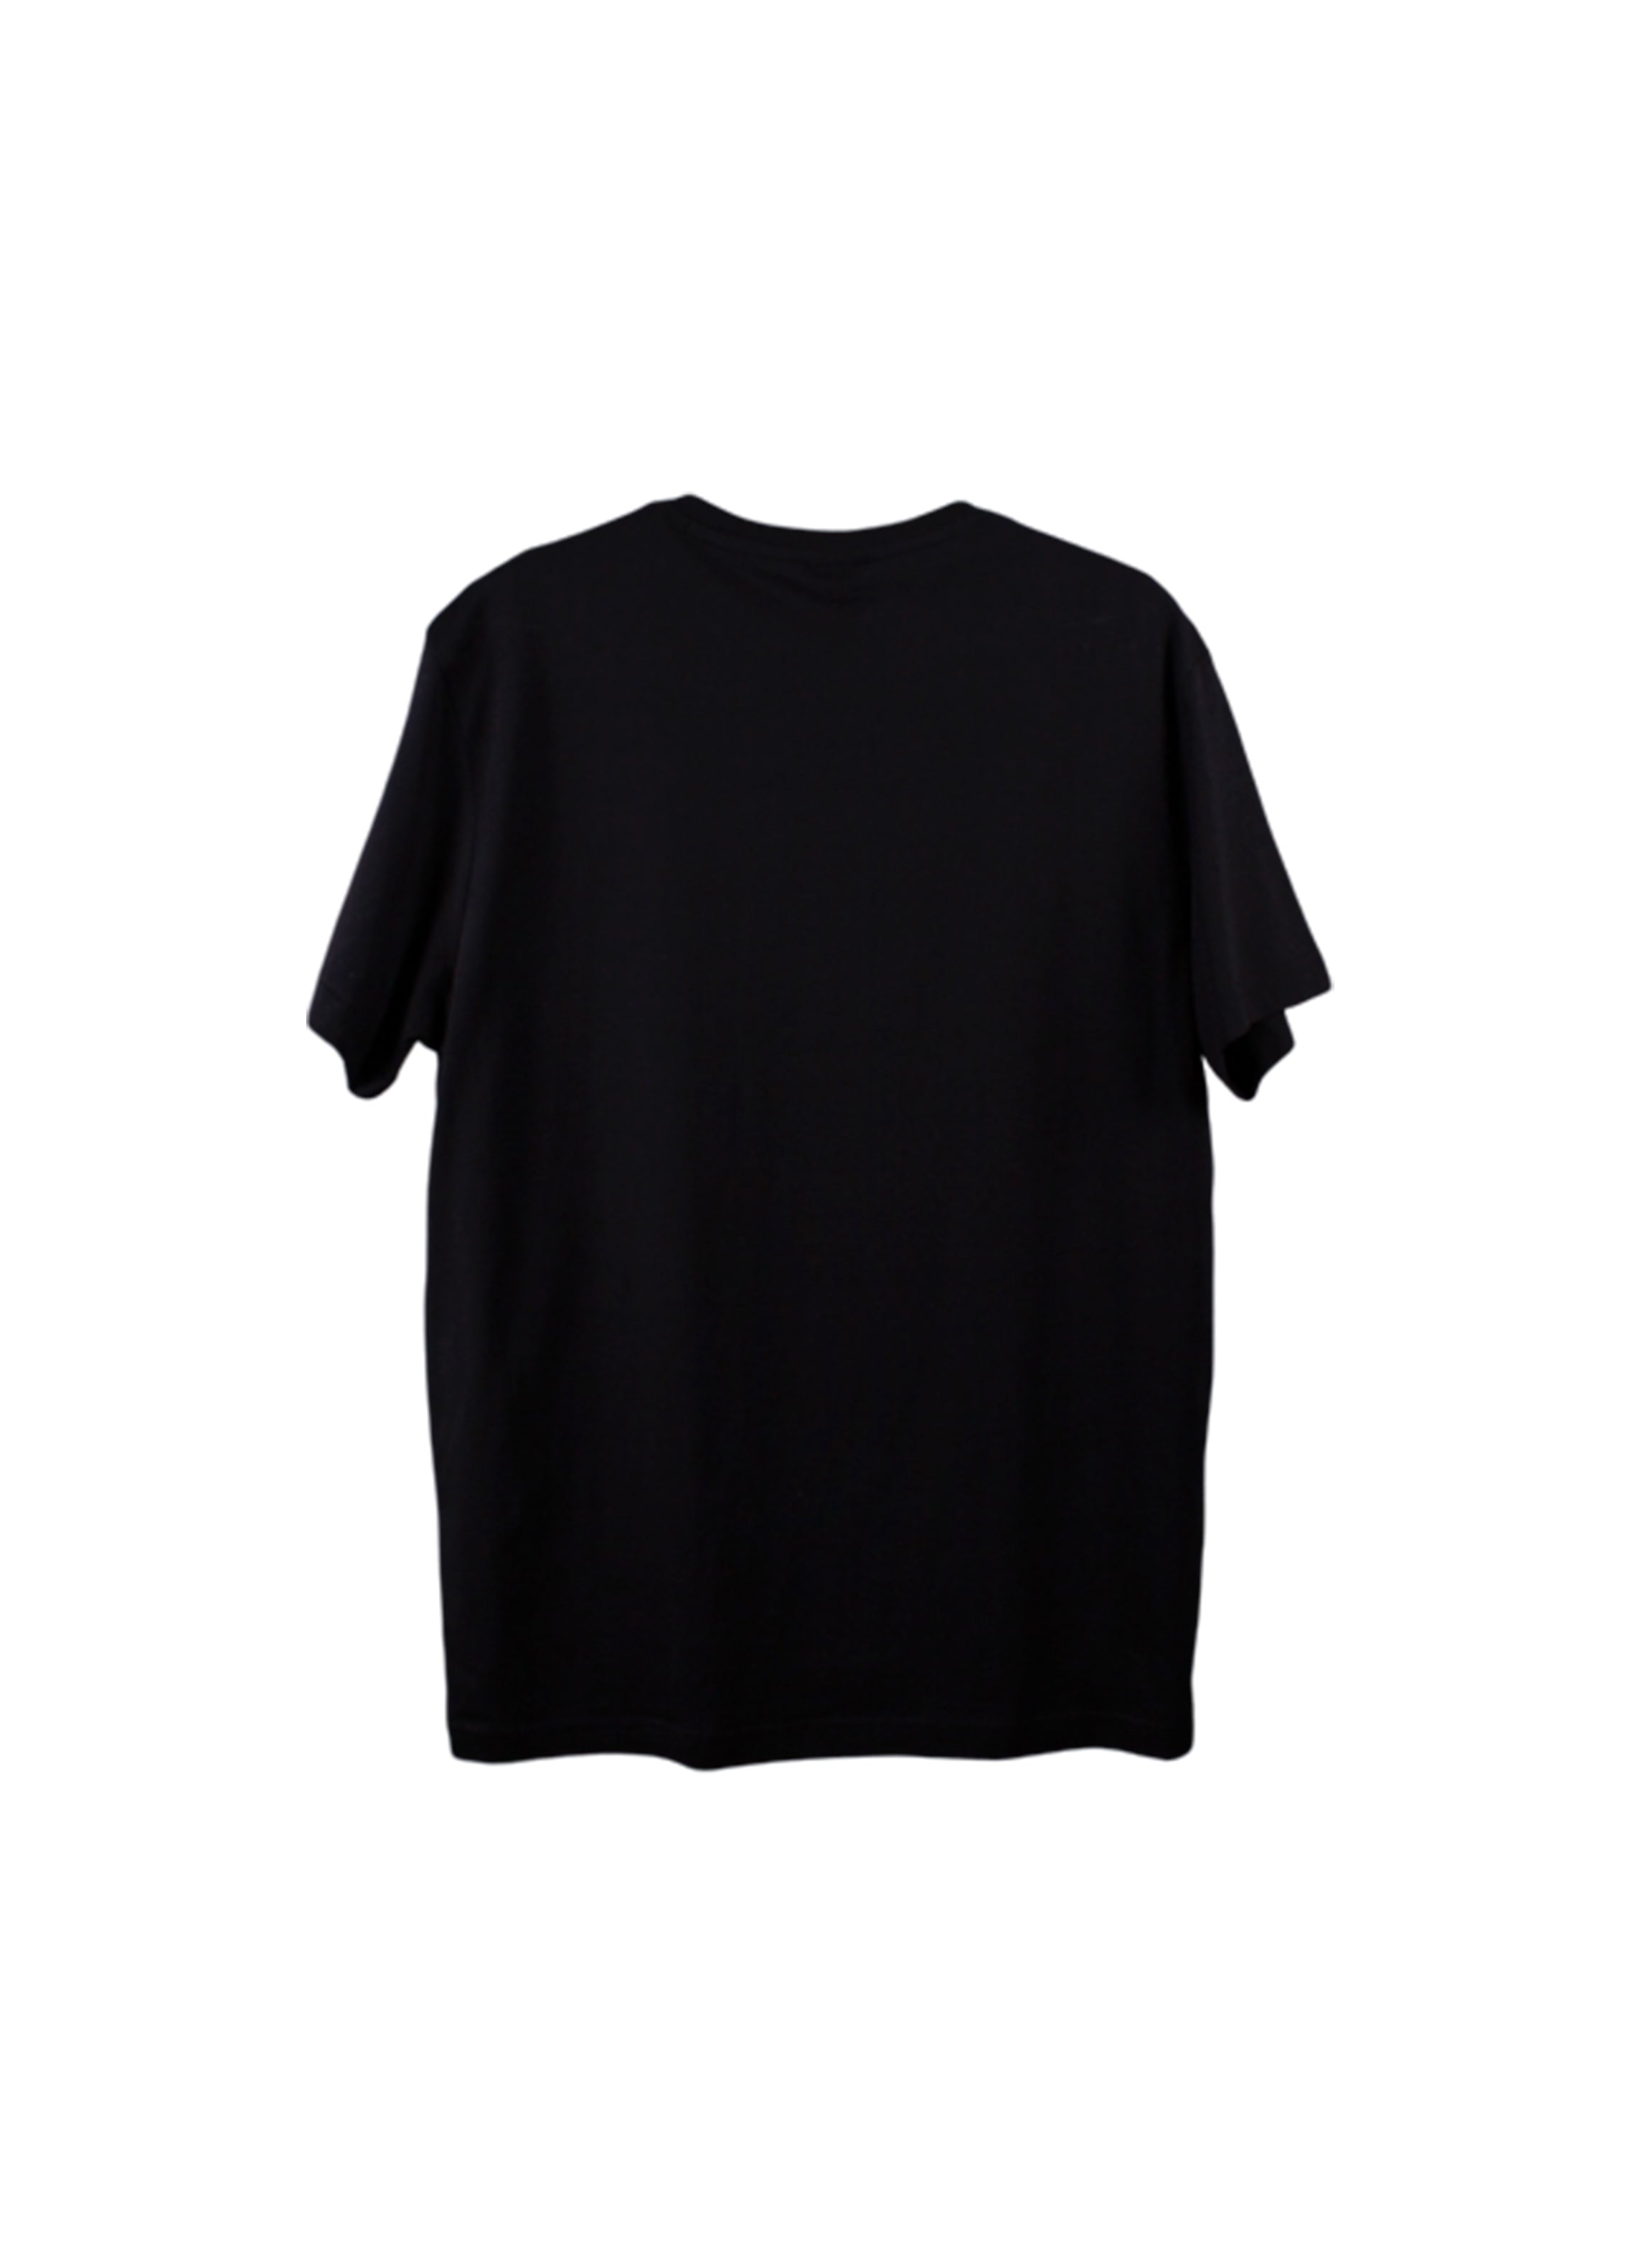 Summer Cem T-Shirt Skelletor Schwarz